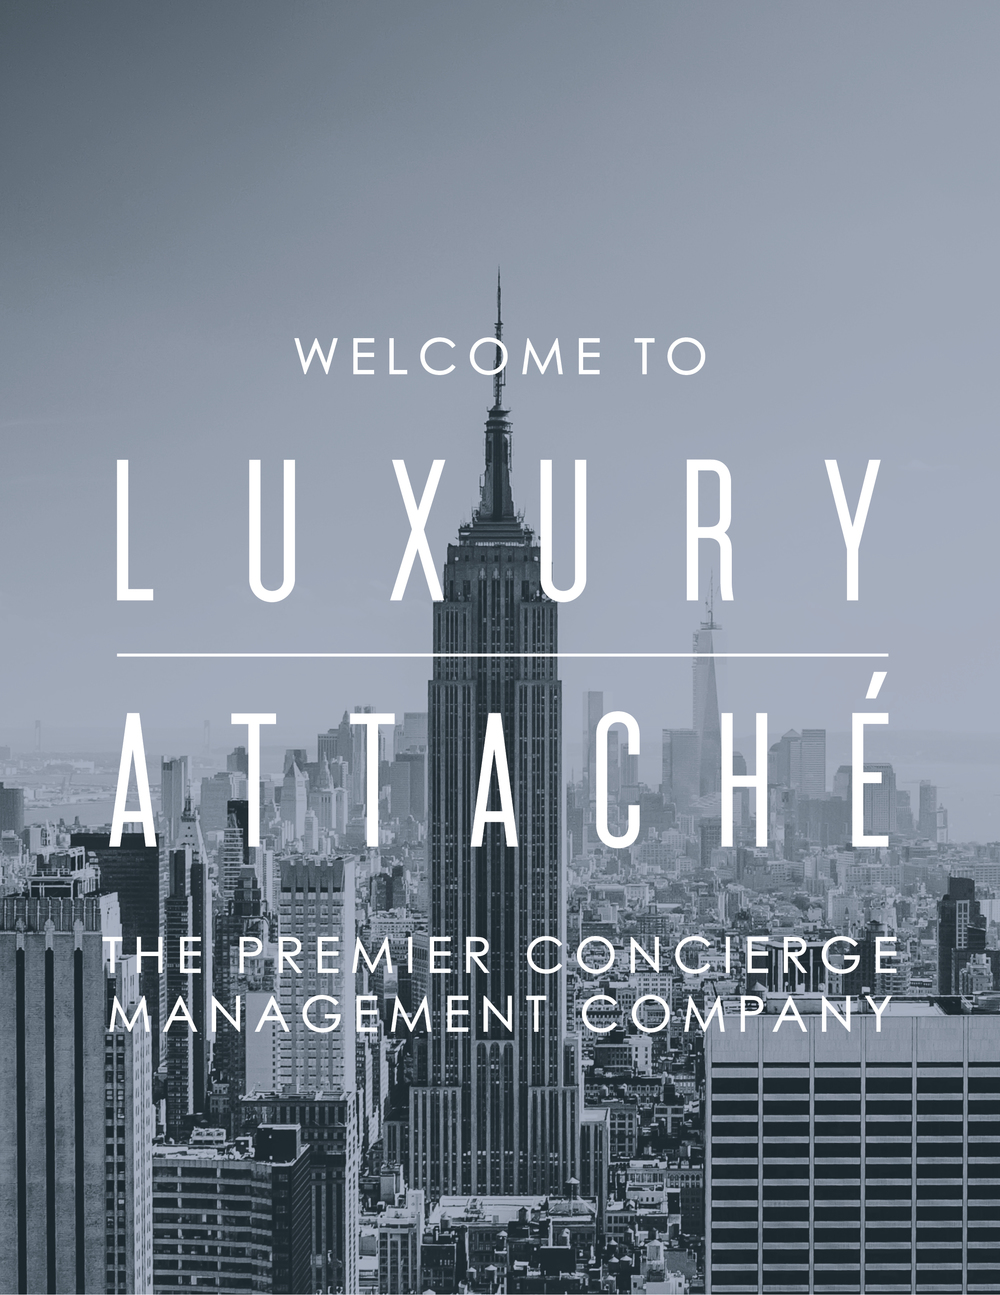 welcome to luxury attache